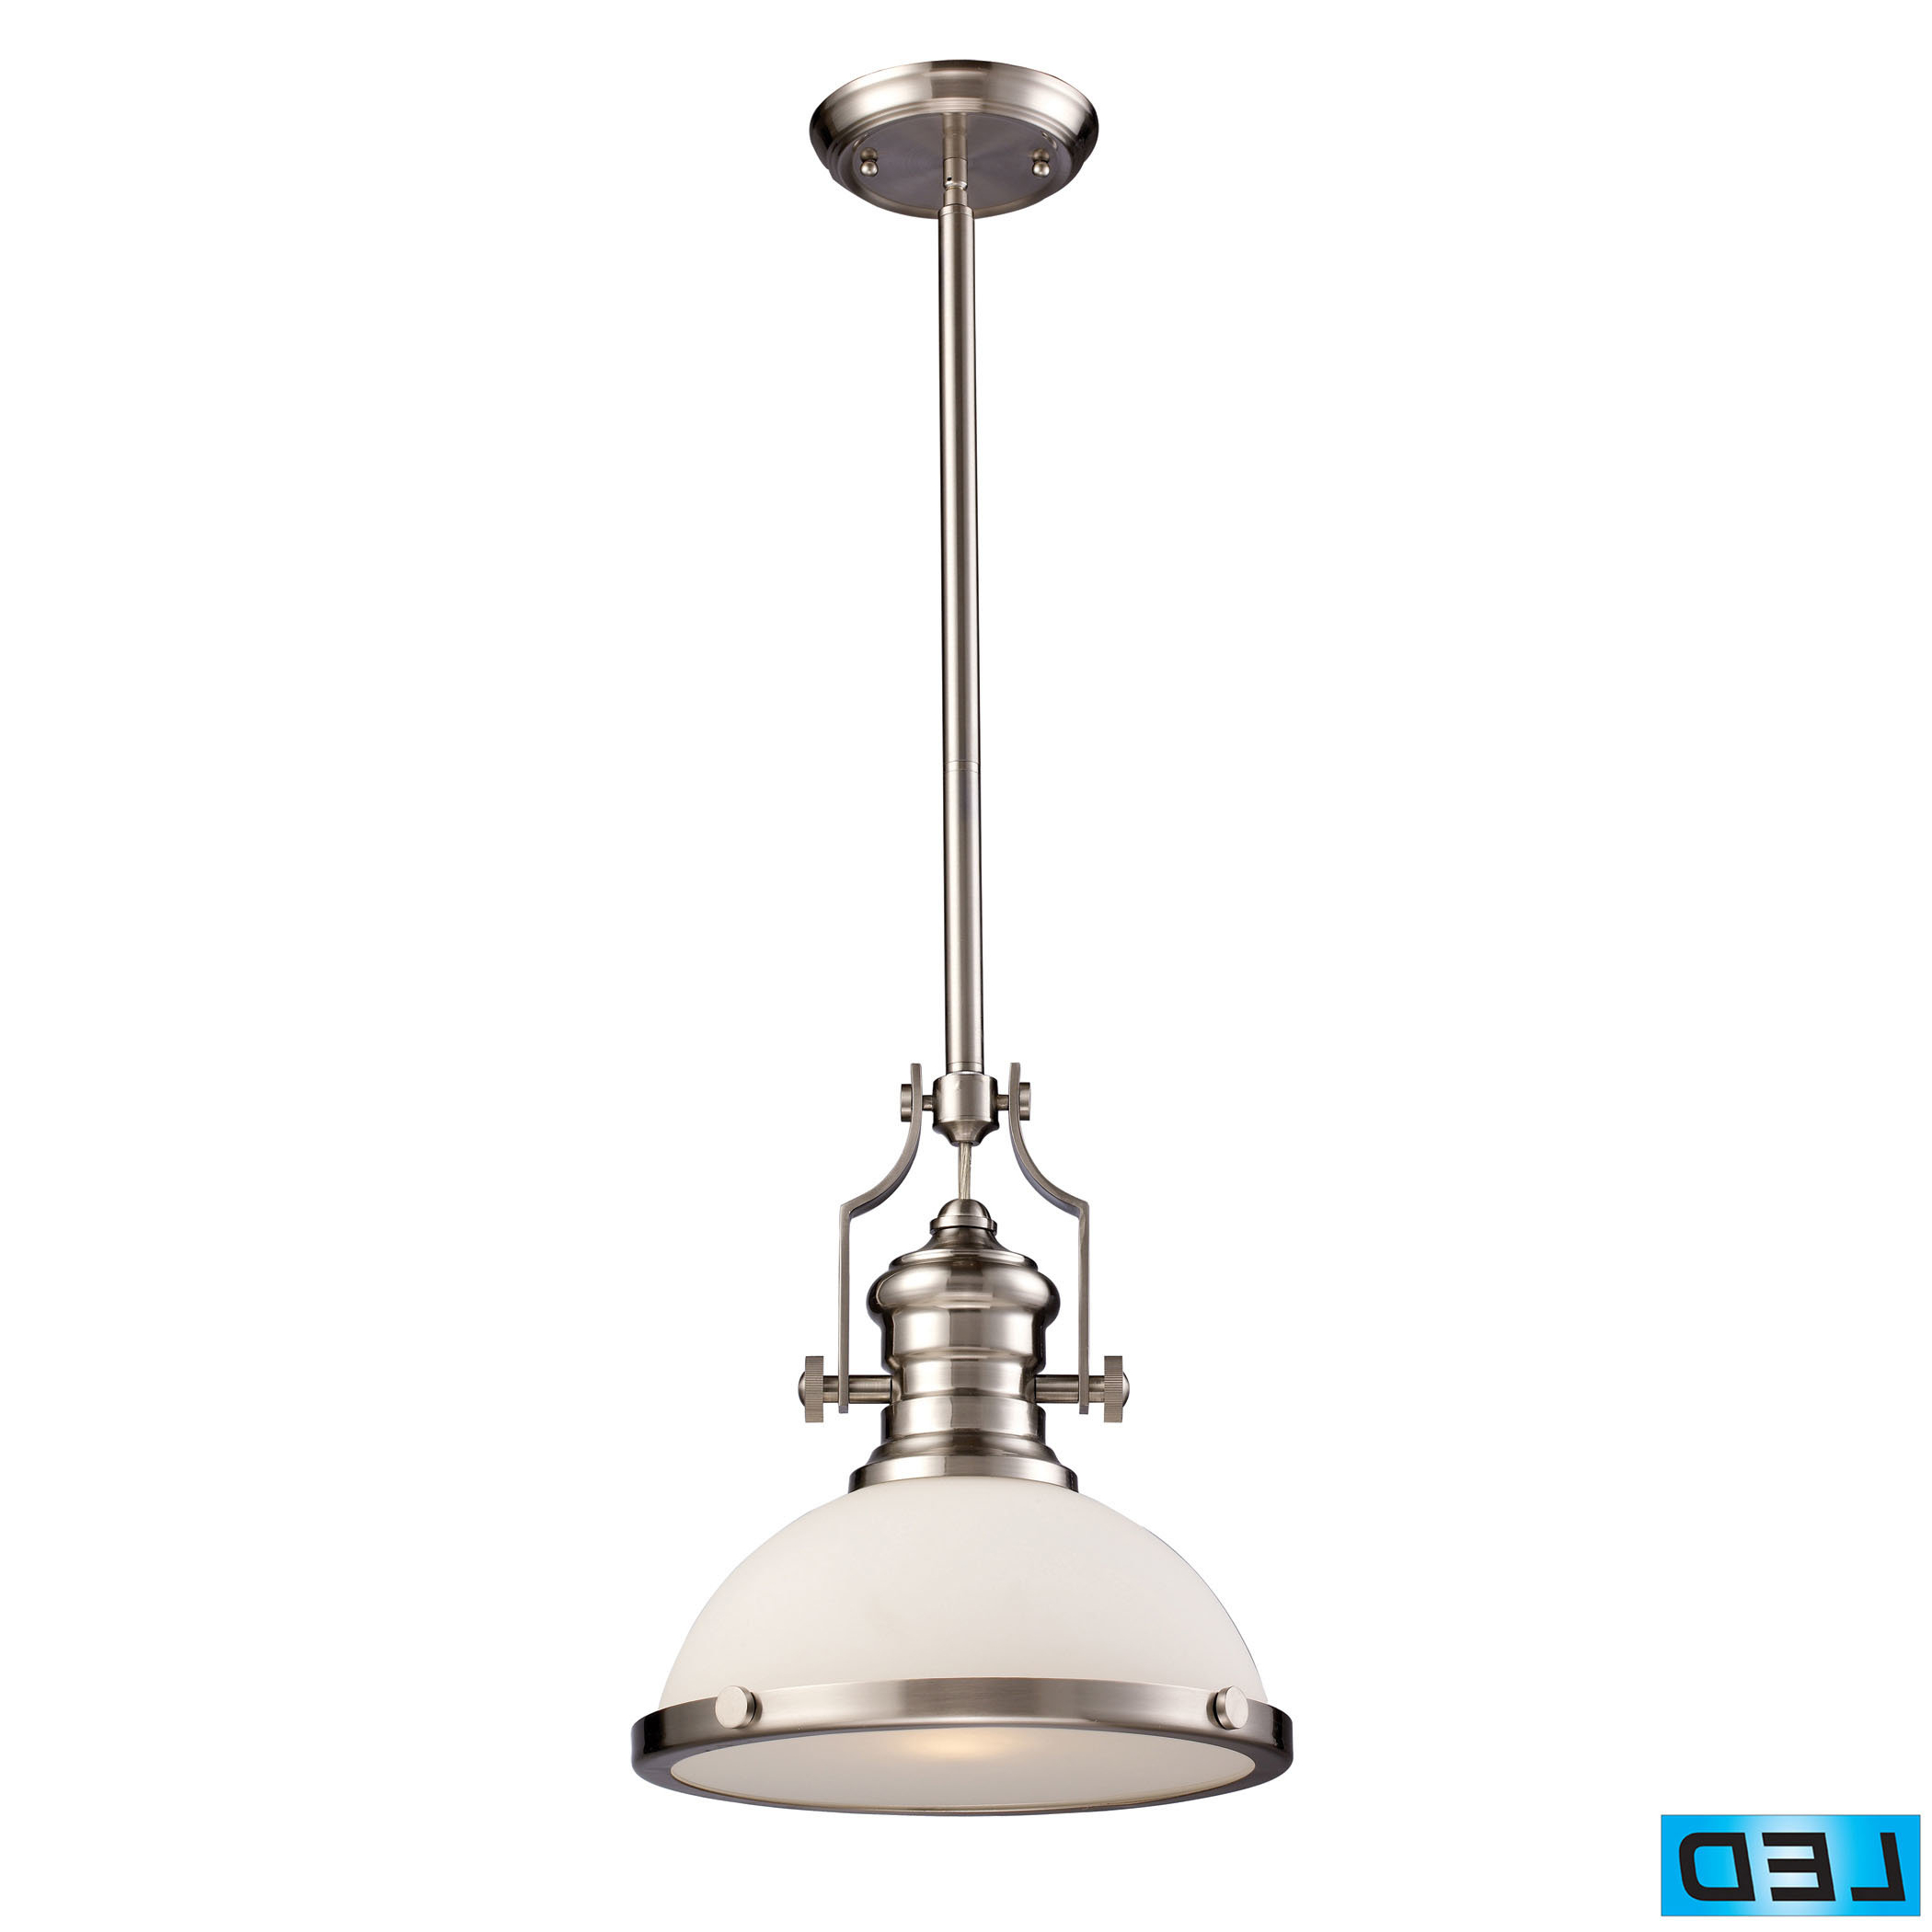 Most Popular 1 Light Single Dome Pendants Within Priston 1 Light Single Dome Pendant (View 25 of 25)